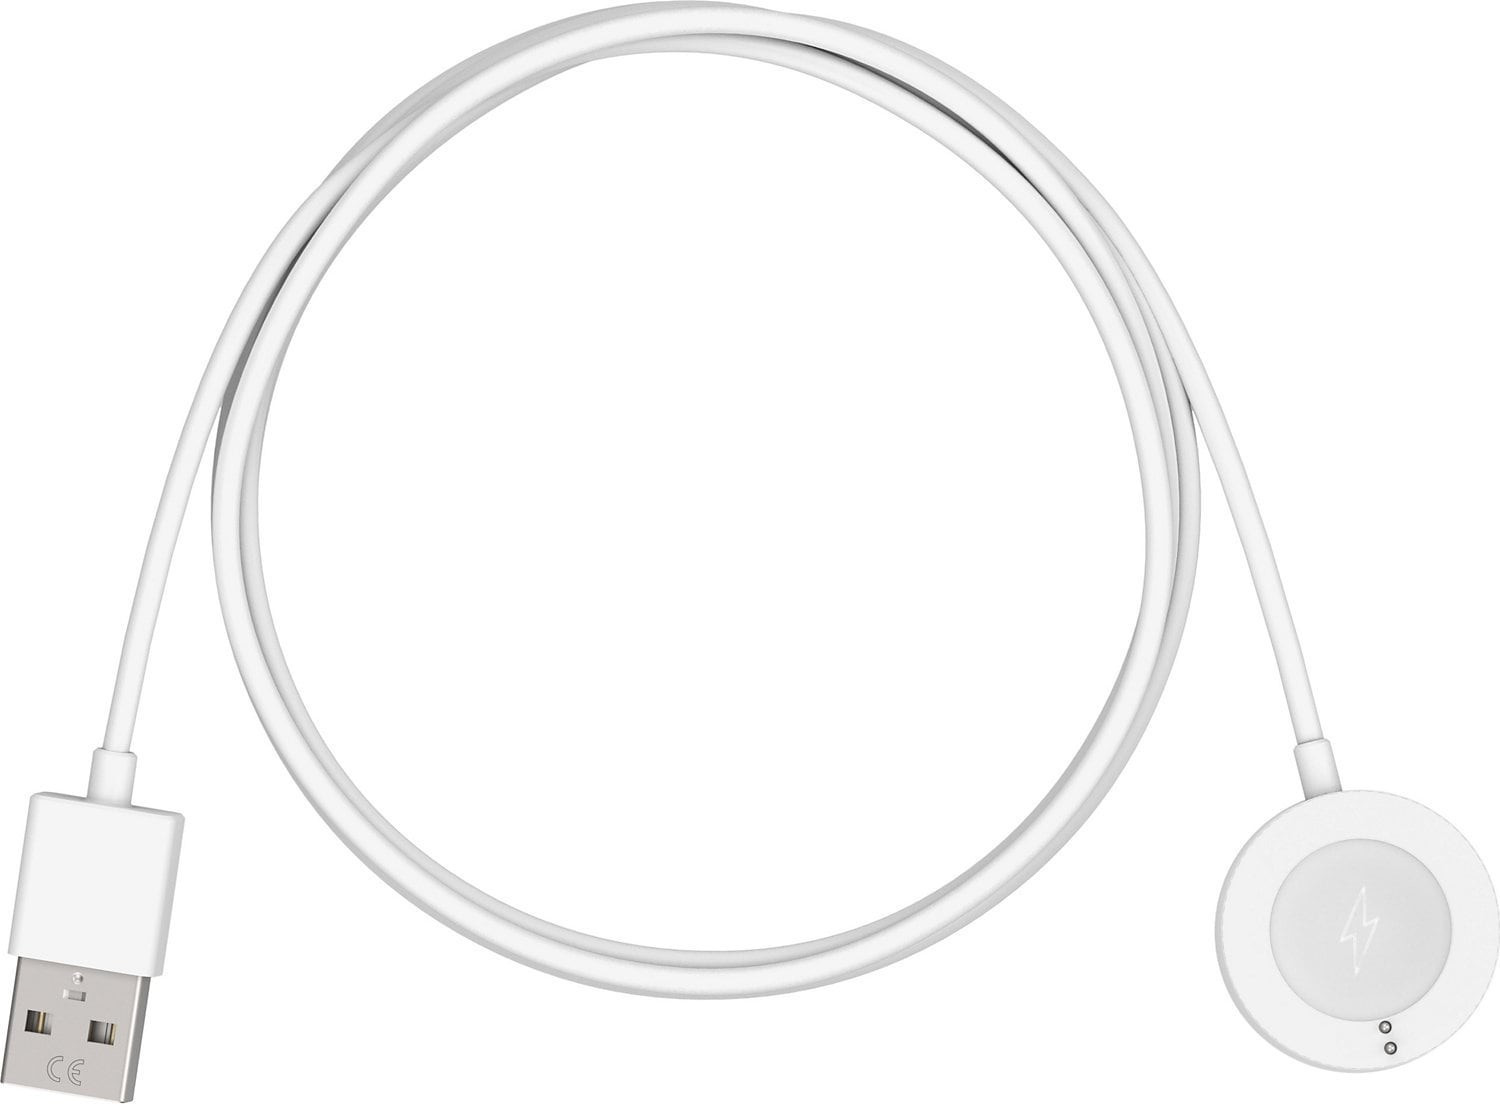 Image of Fossil Charging Cable (FTW0004)